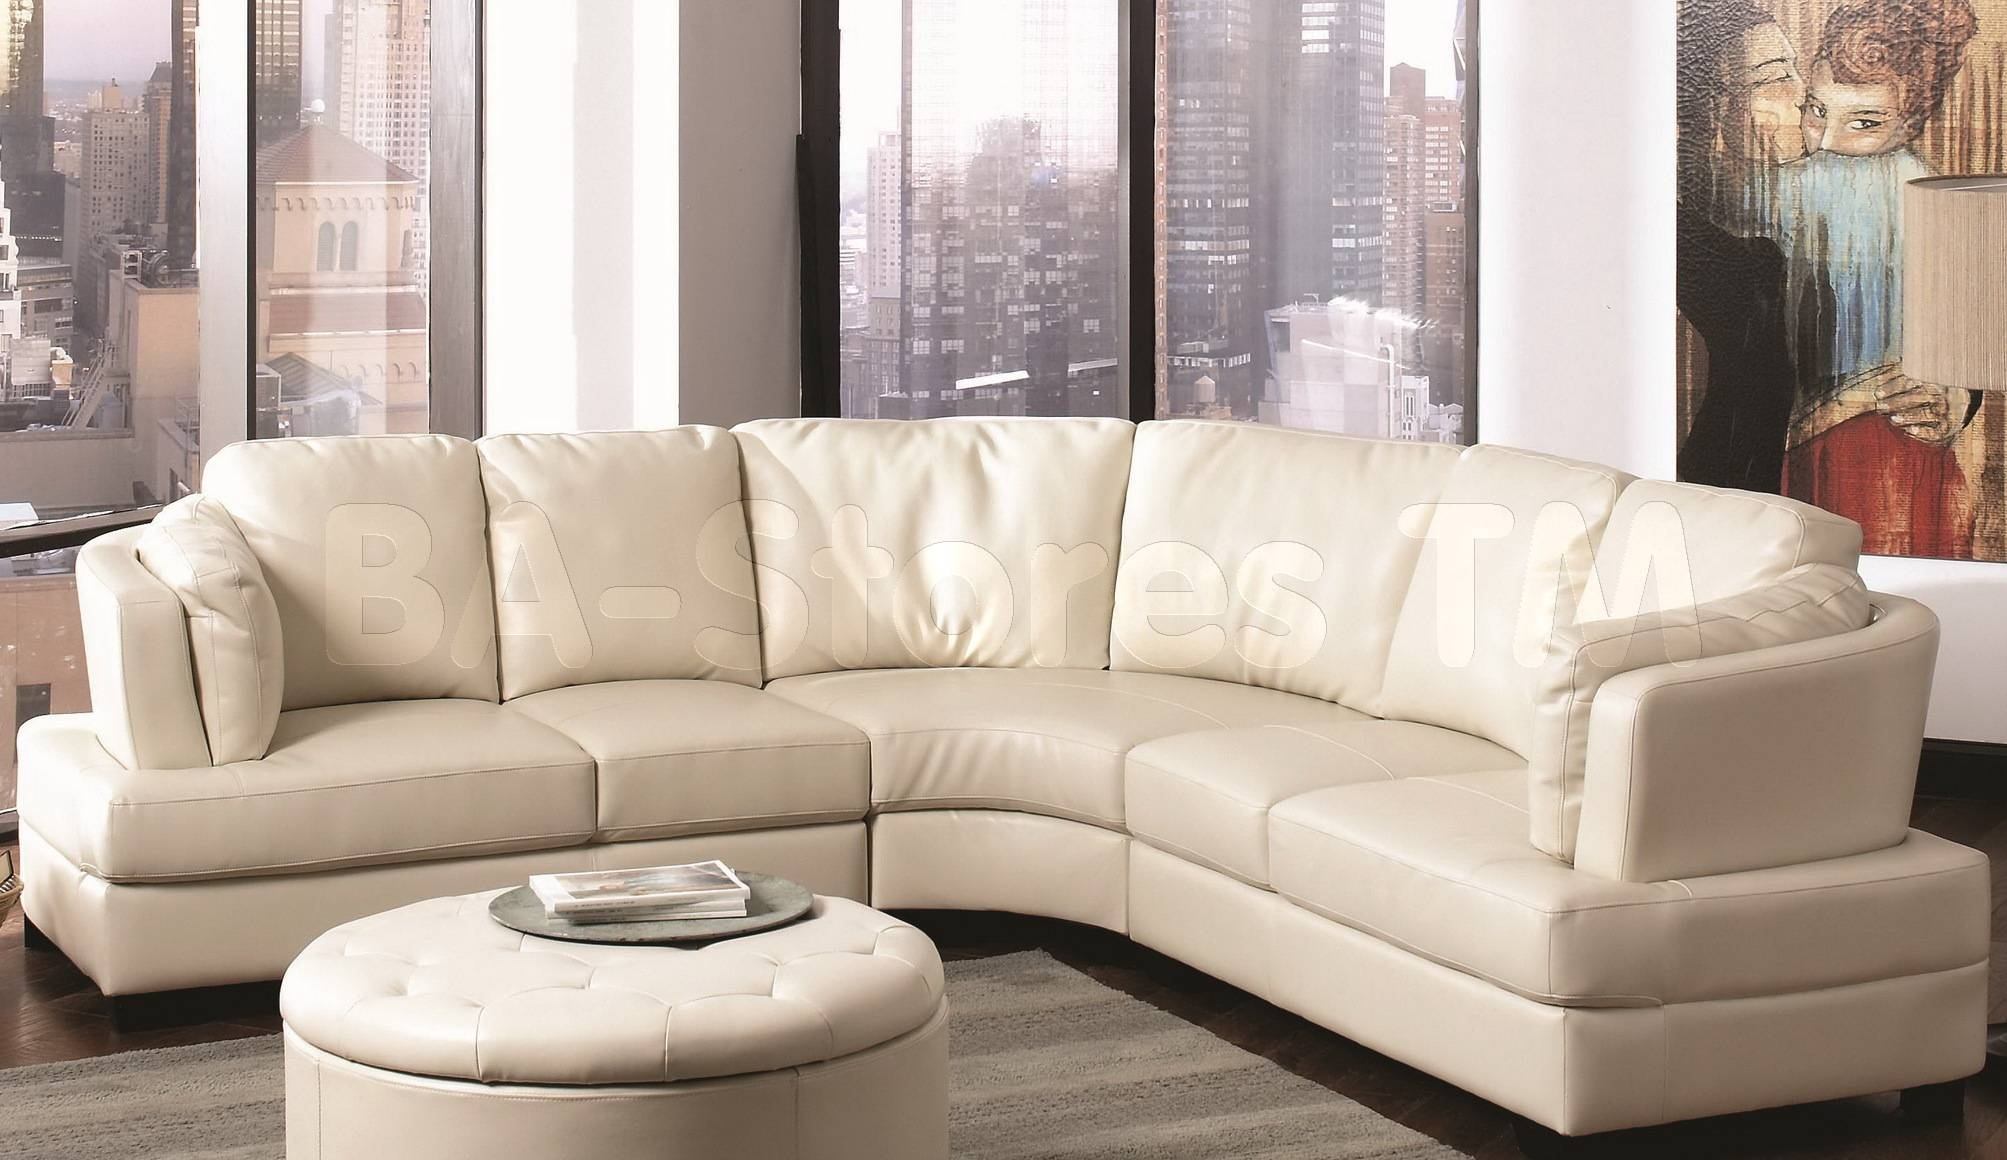 Round Sectional Sofa | Tehranmix Decoration Within Semi Round Sectional Sofas (View 10 of 15)